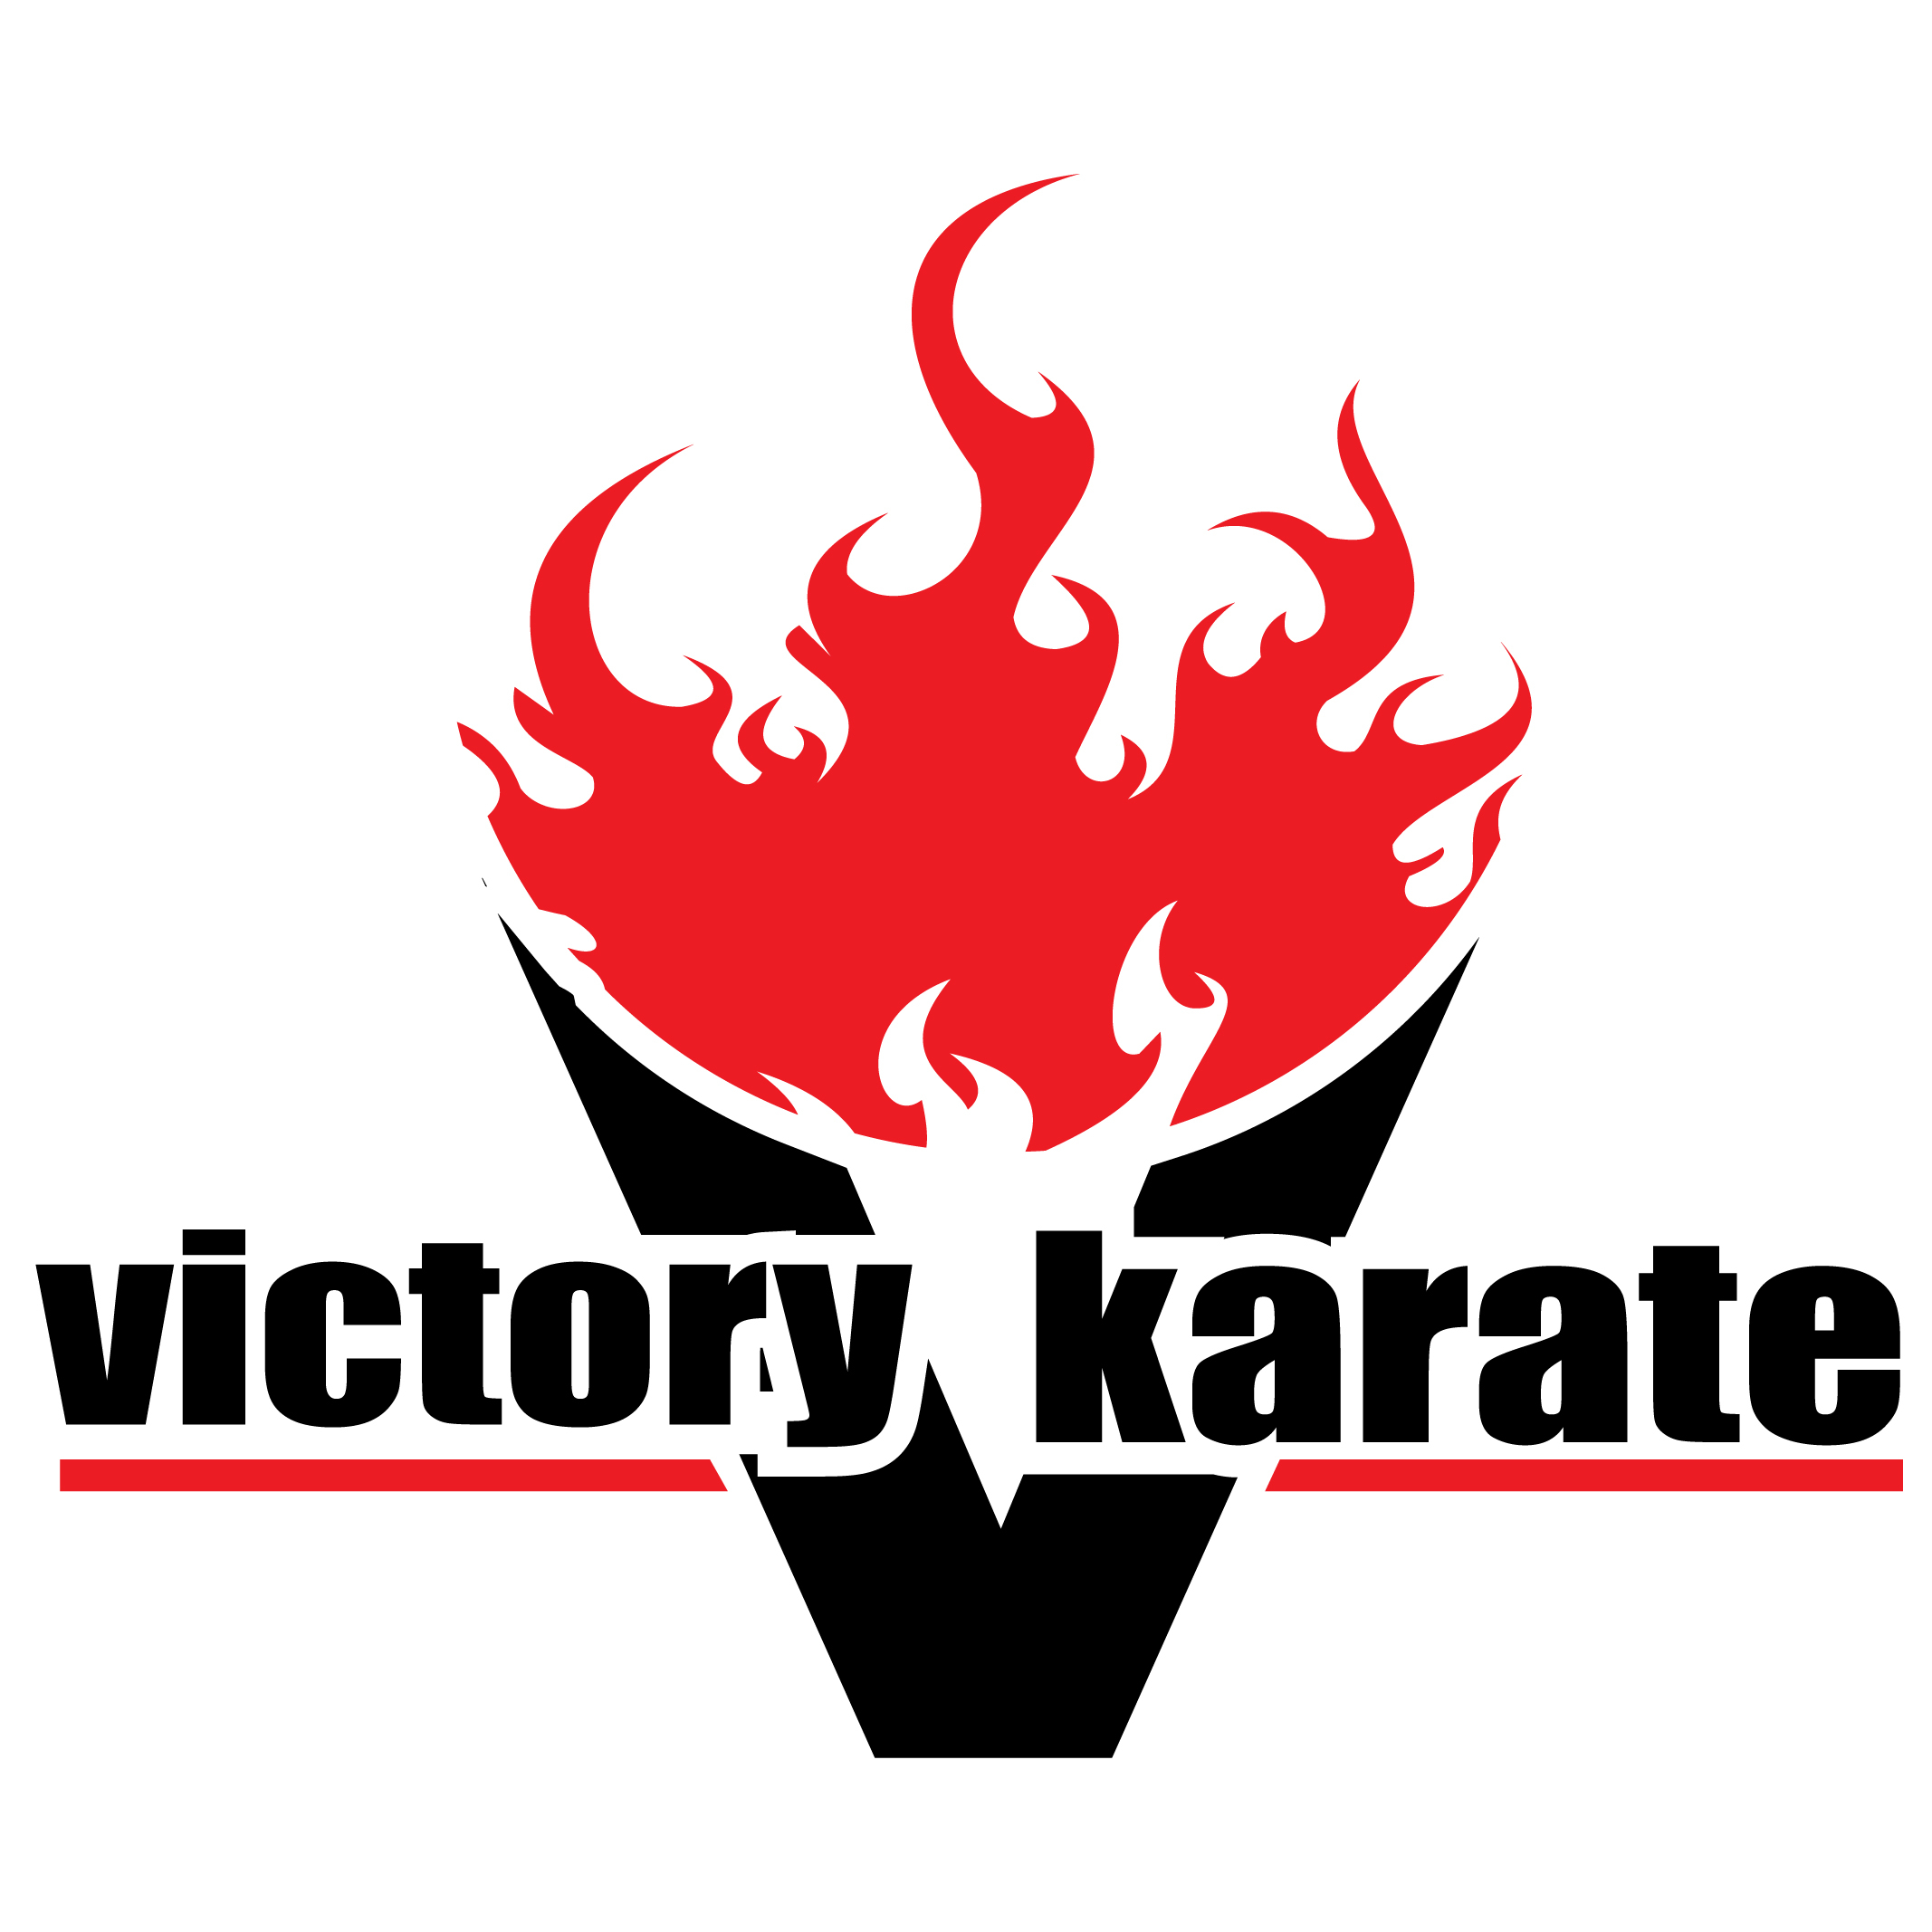 Victory Karate and Afterschool Program